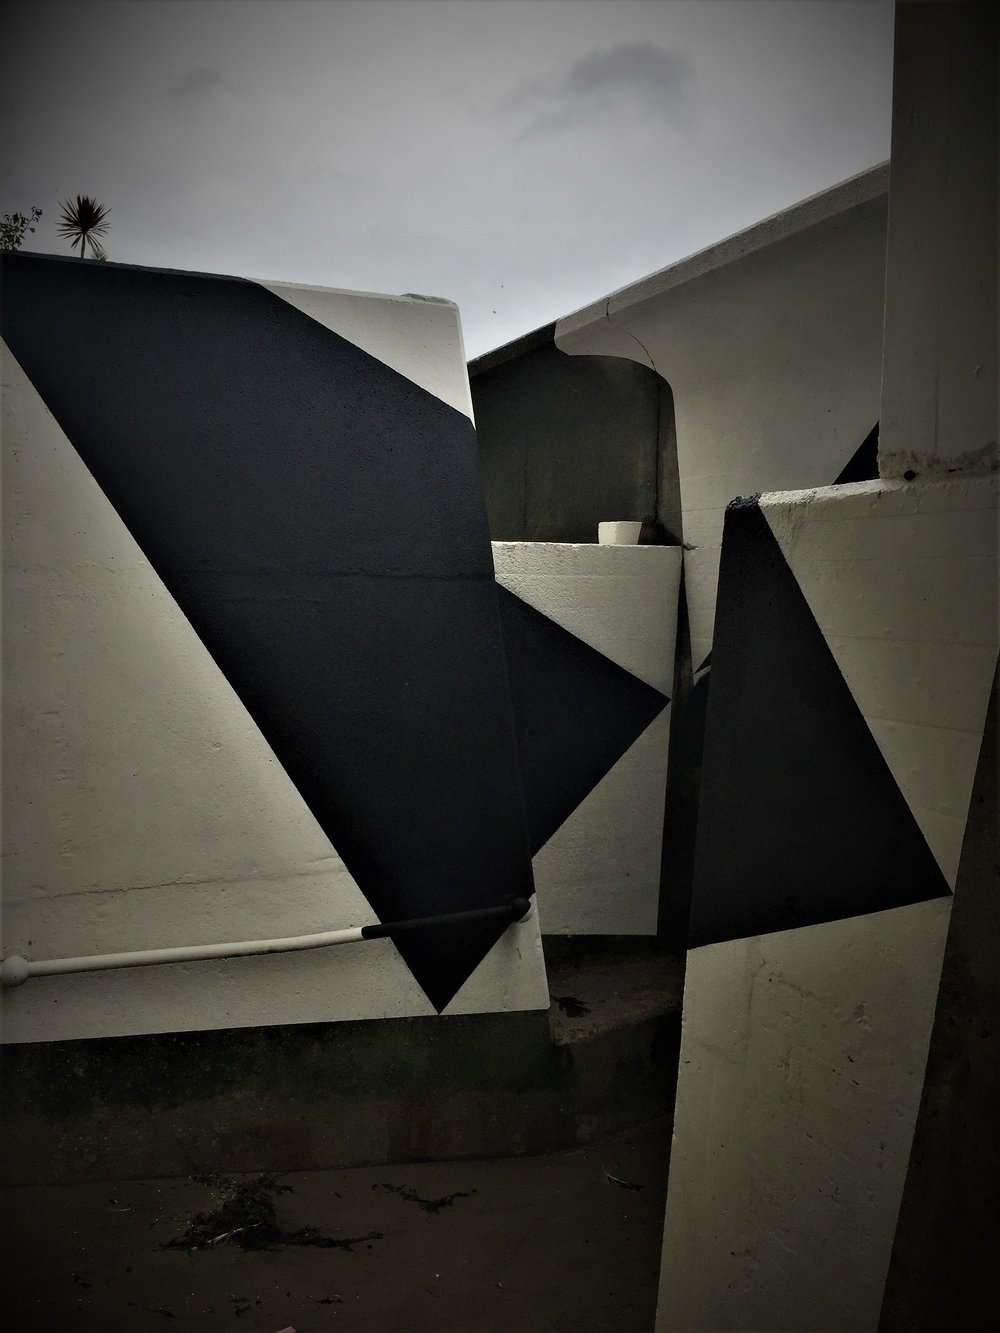 Folkestone Triennal Art - Gary Woodley, Impingement No. 66 'Cube Circumscribed by Tetrahedron